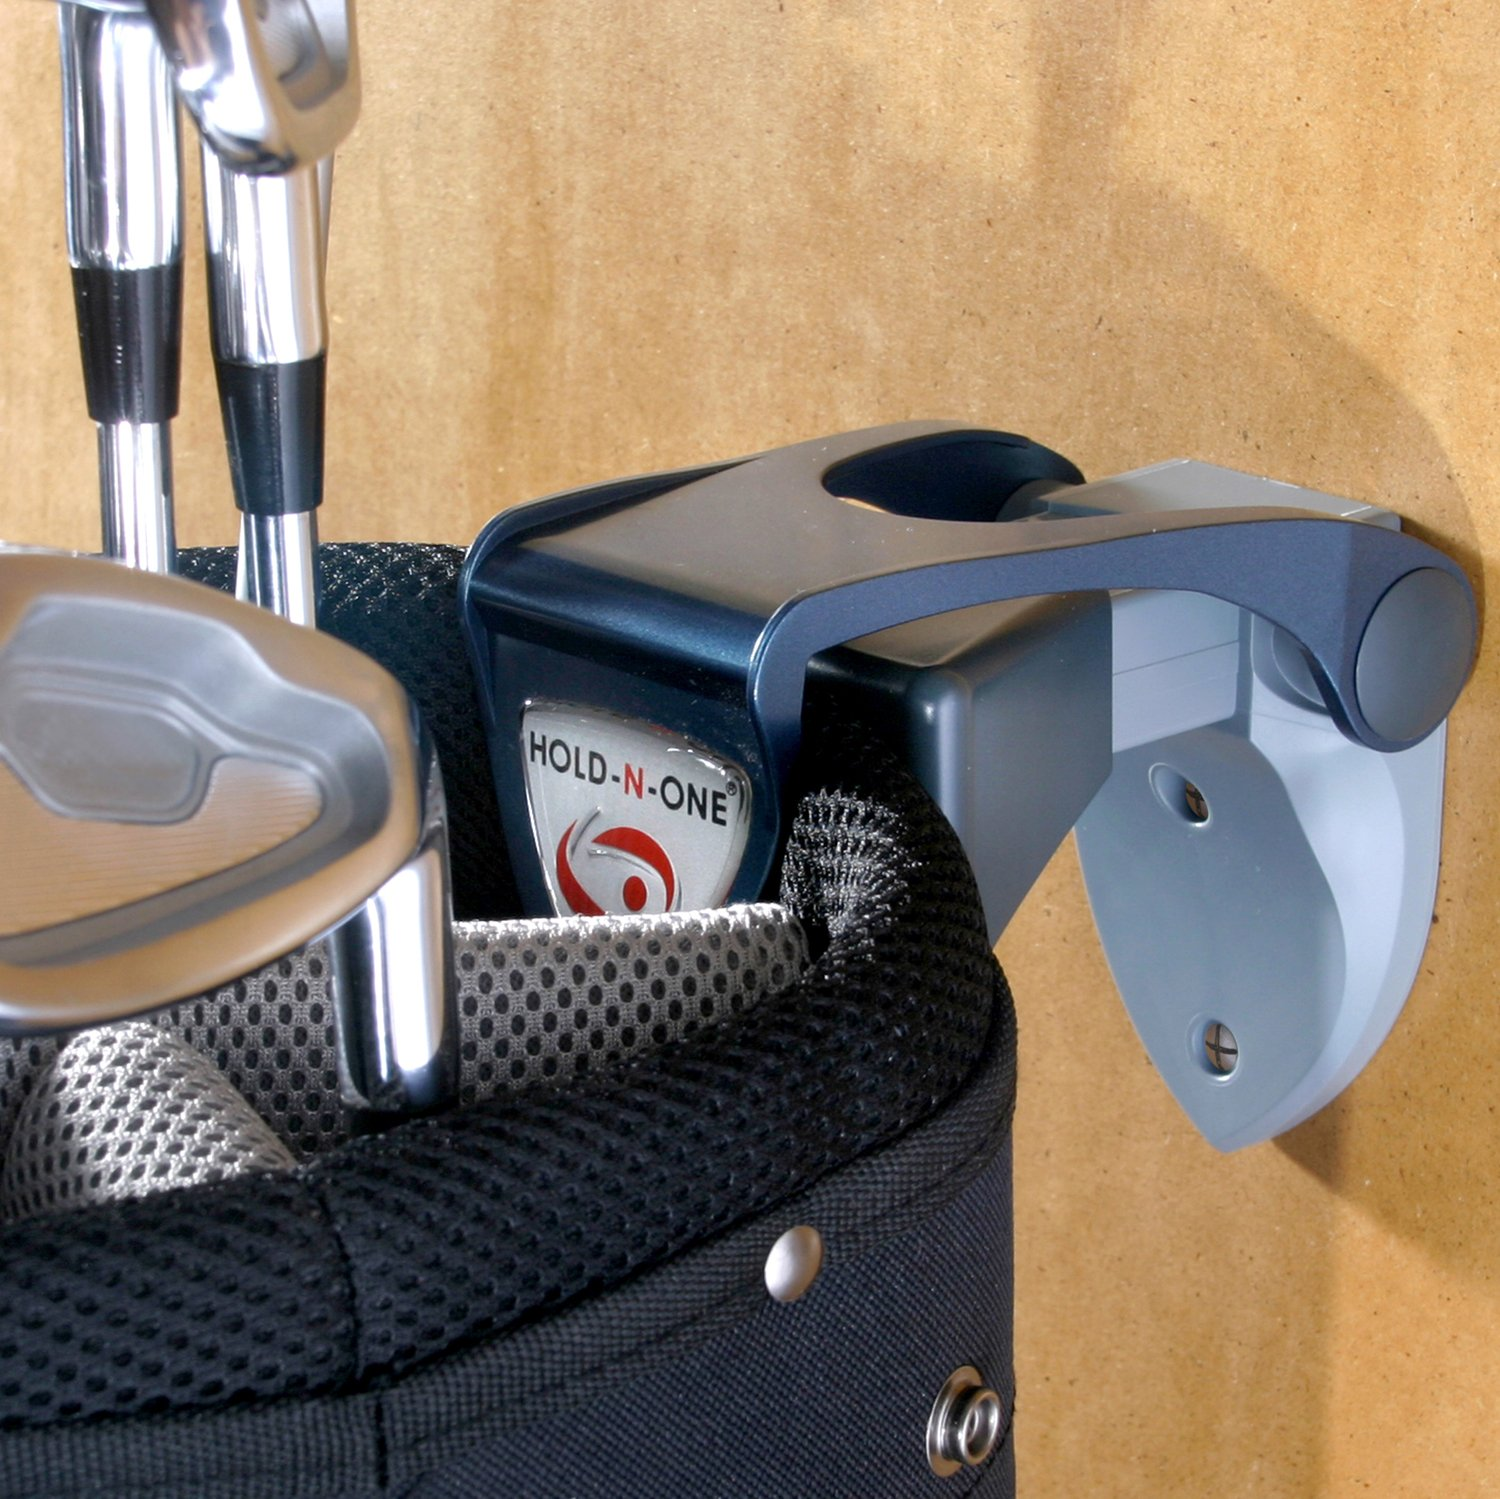 Hold-N-One Golf Bag Holder by The Other Edge (Image #6)